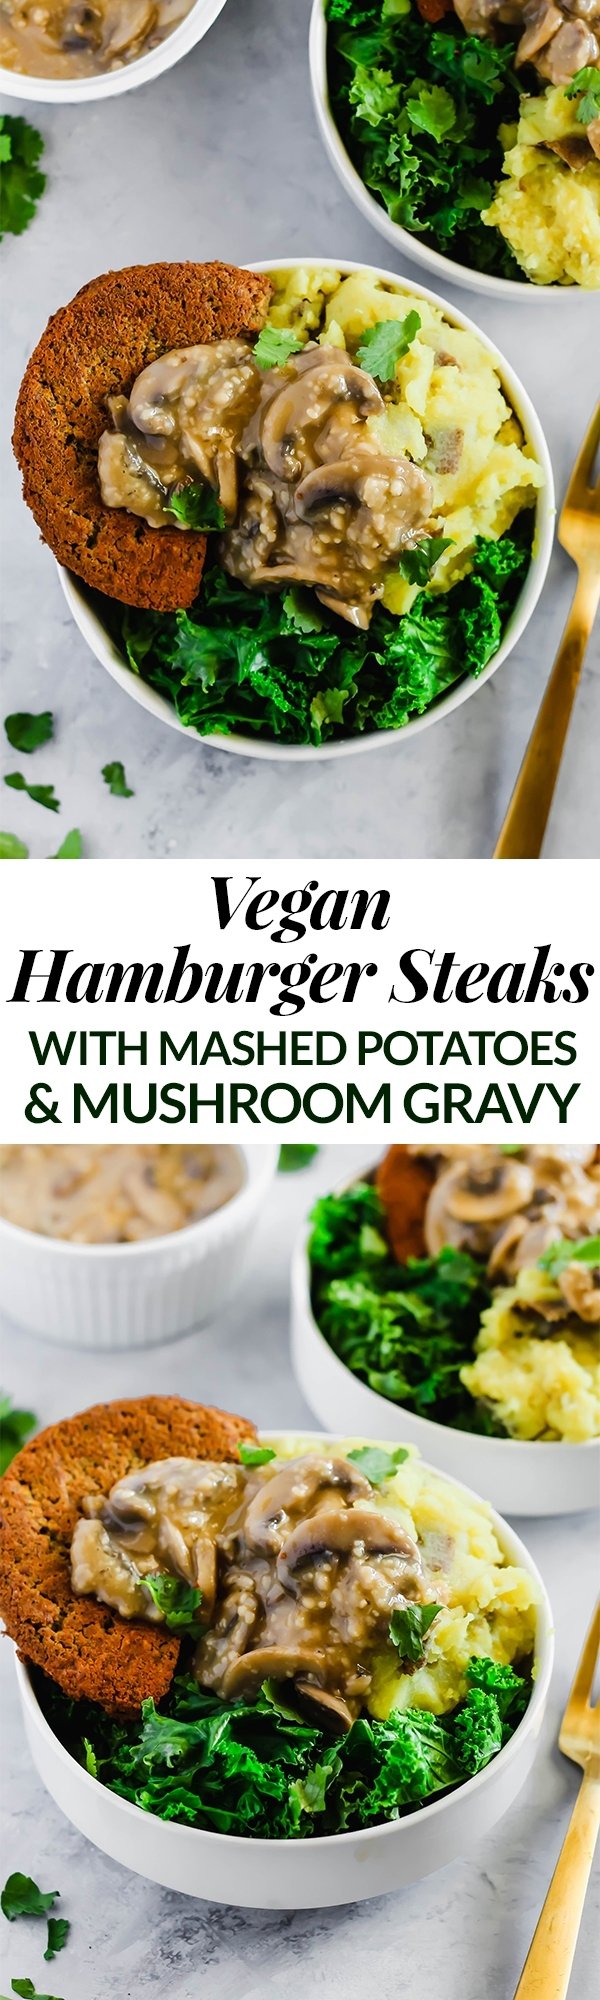 These Vegan Hamburger Steaks make a savory meatless dinner that everyone at the table will love. Serve them with mashed potatoes & mushroom gravy to take them to the next level!